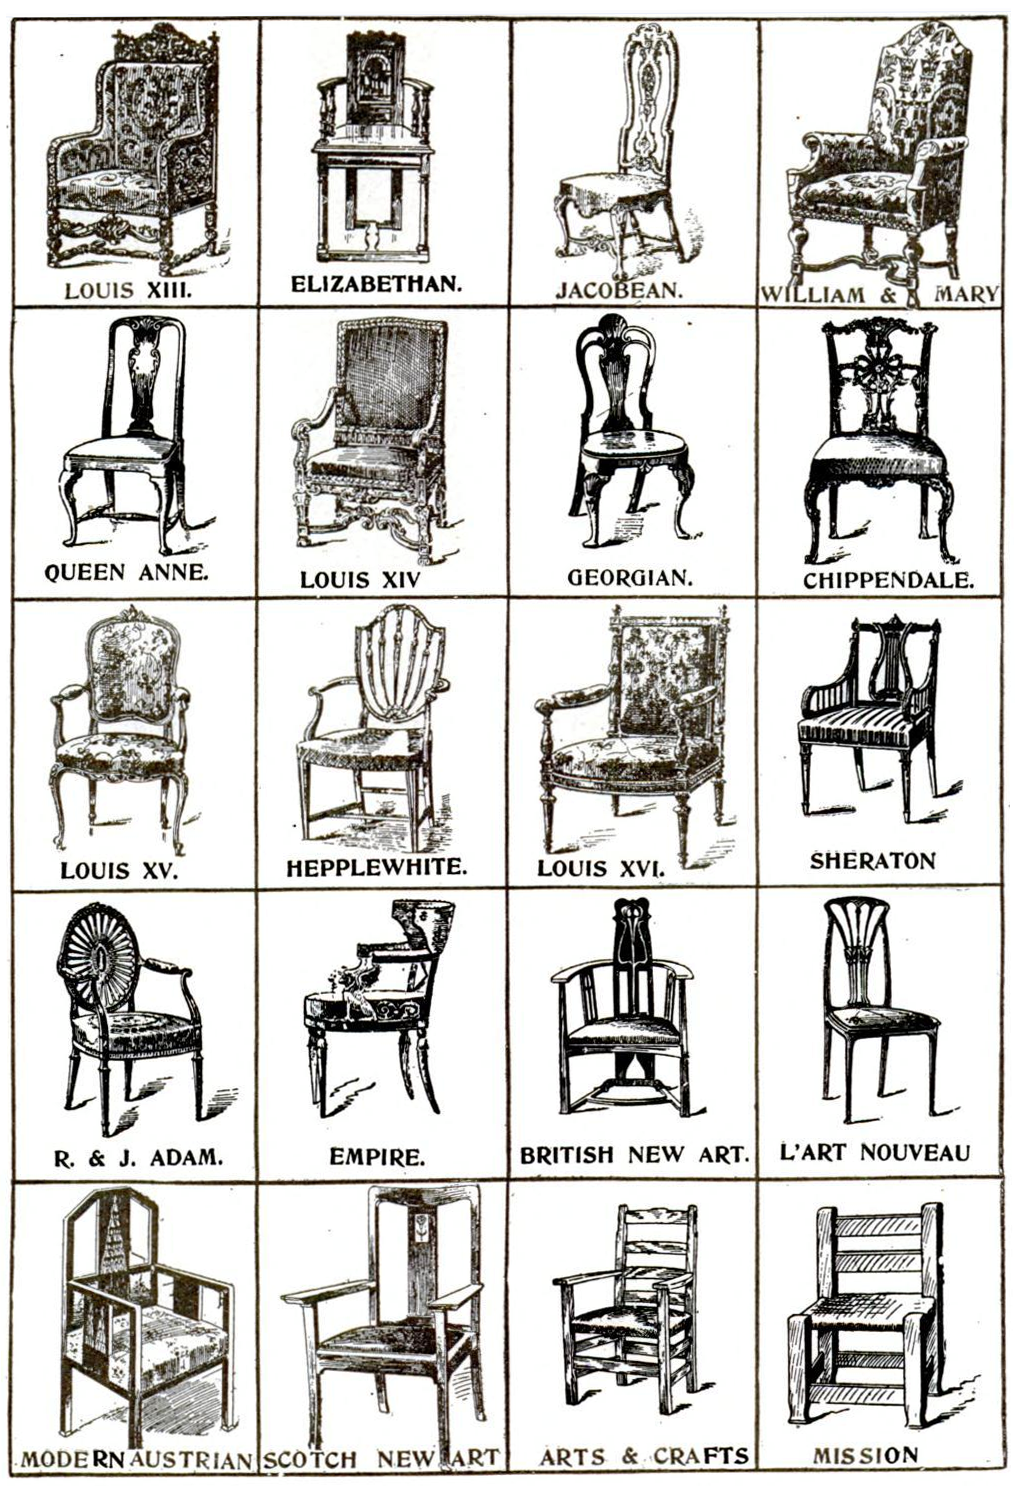 Antique Queen Anne Chair Gym Customer Service This Chart Was Originally Published In 1907 On The February Issue Of Popular Mechanics. It Shows ...